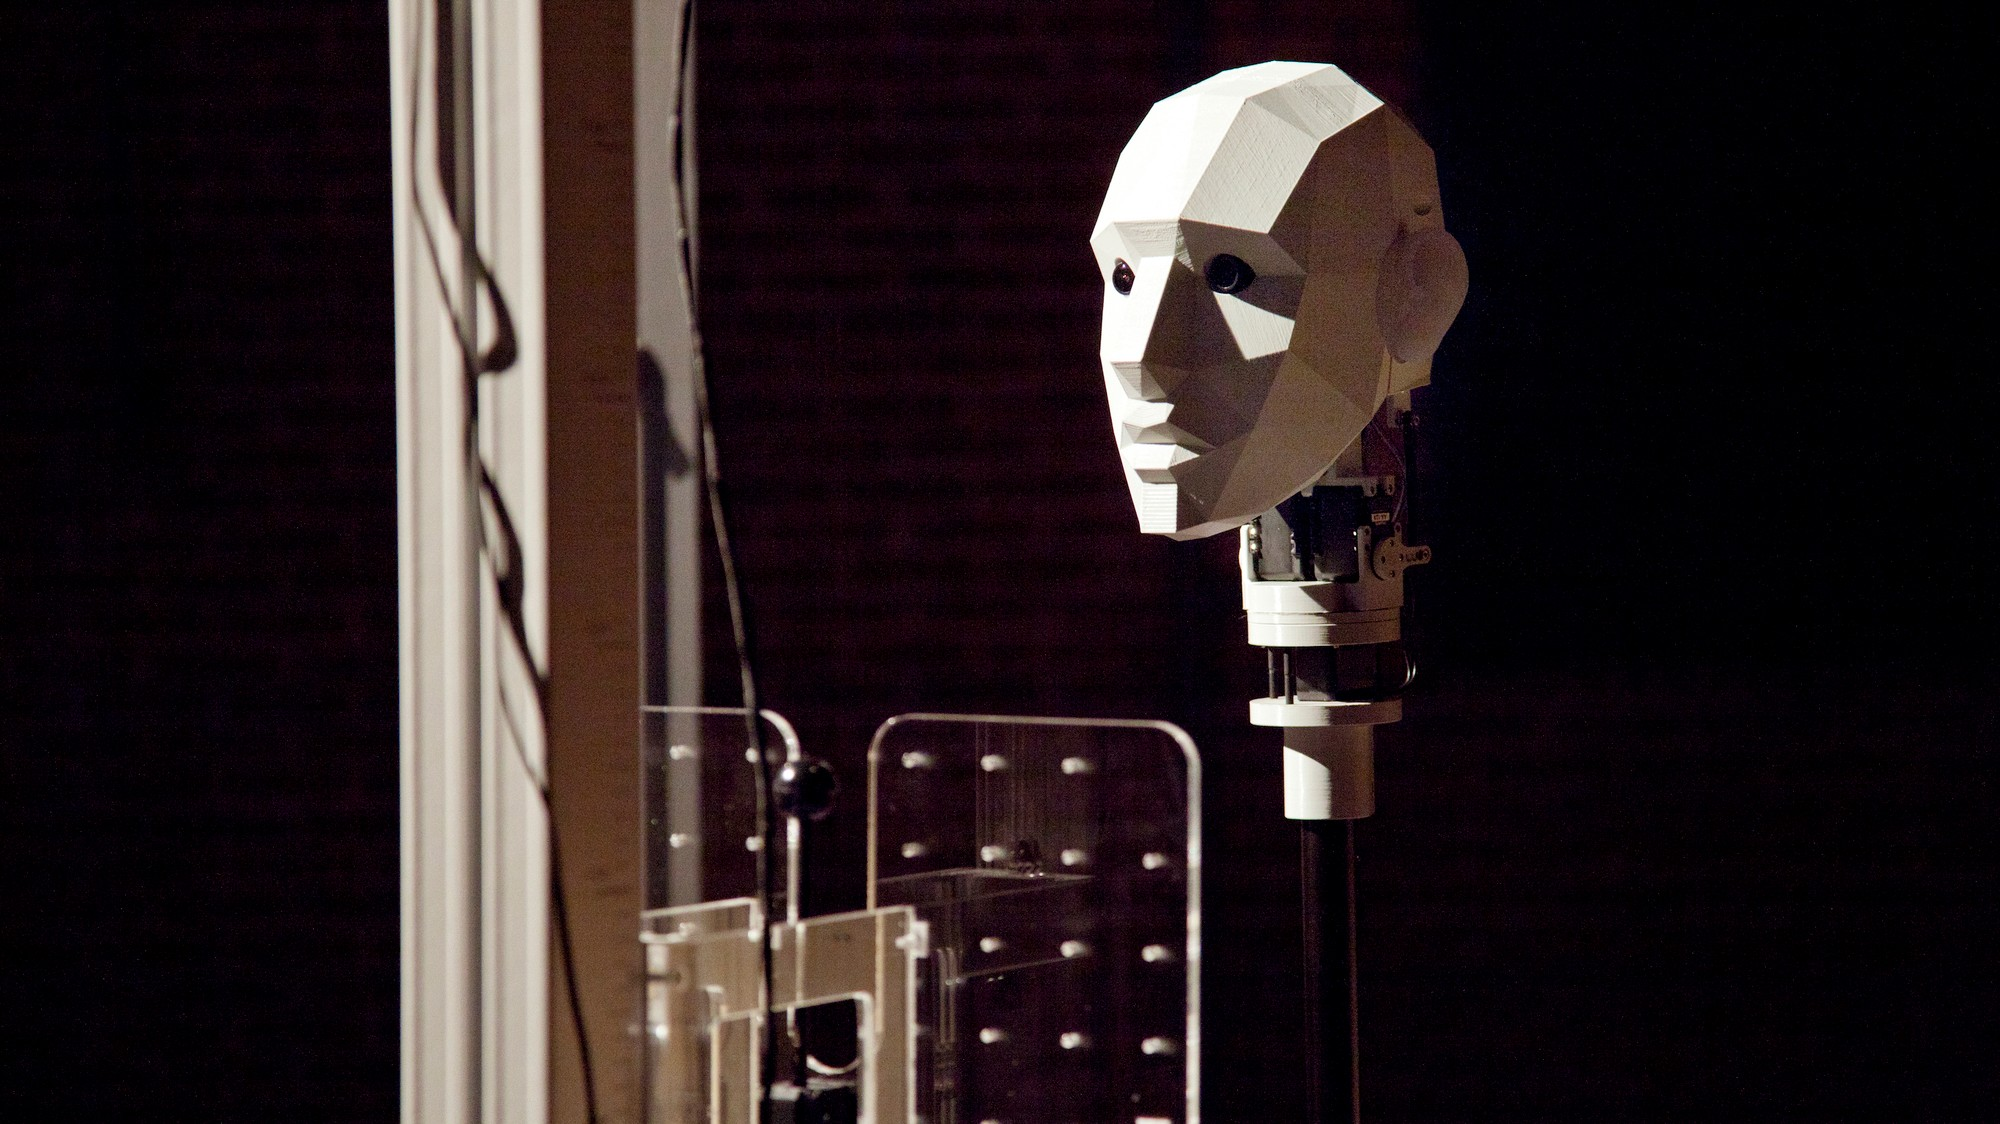 Transferring Your Consciousness Into This Terrifying Robot